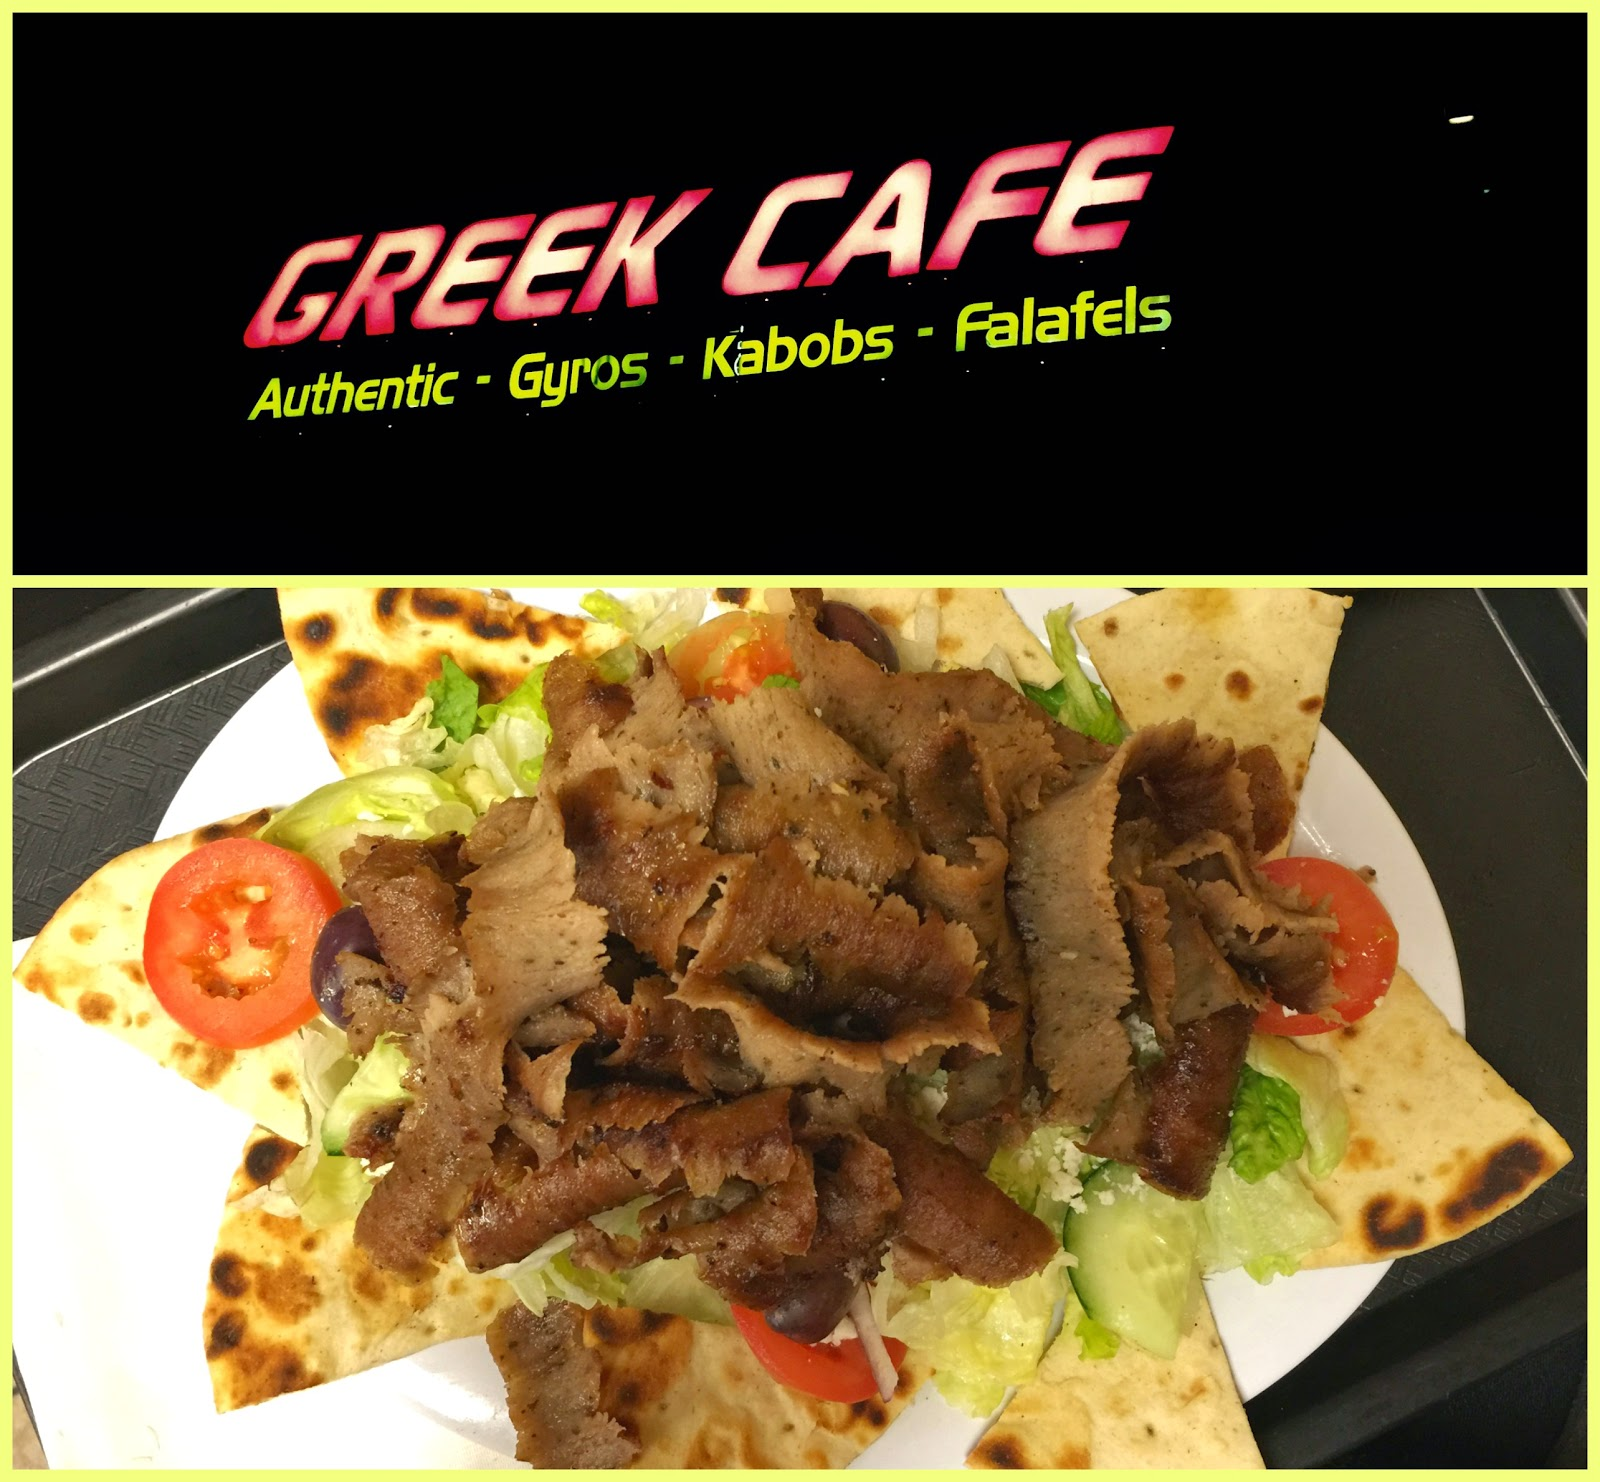 http://www.csindy.com/coloradosprings/greek-cafe/Location?oid=2007365